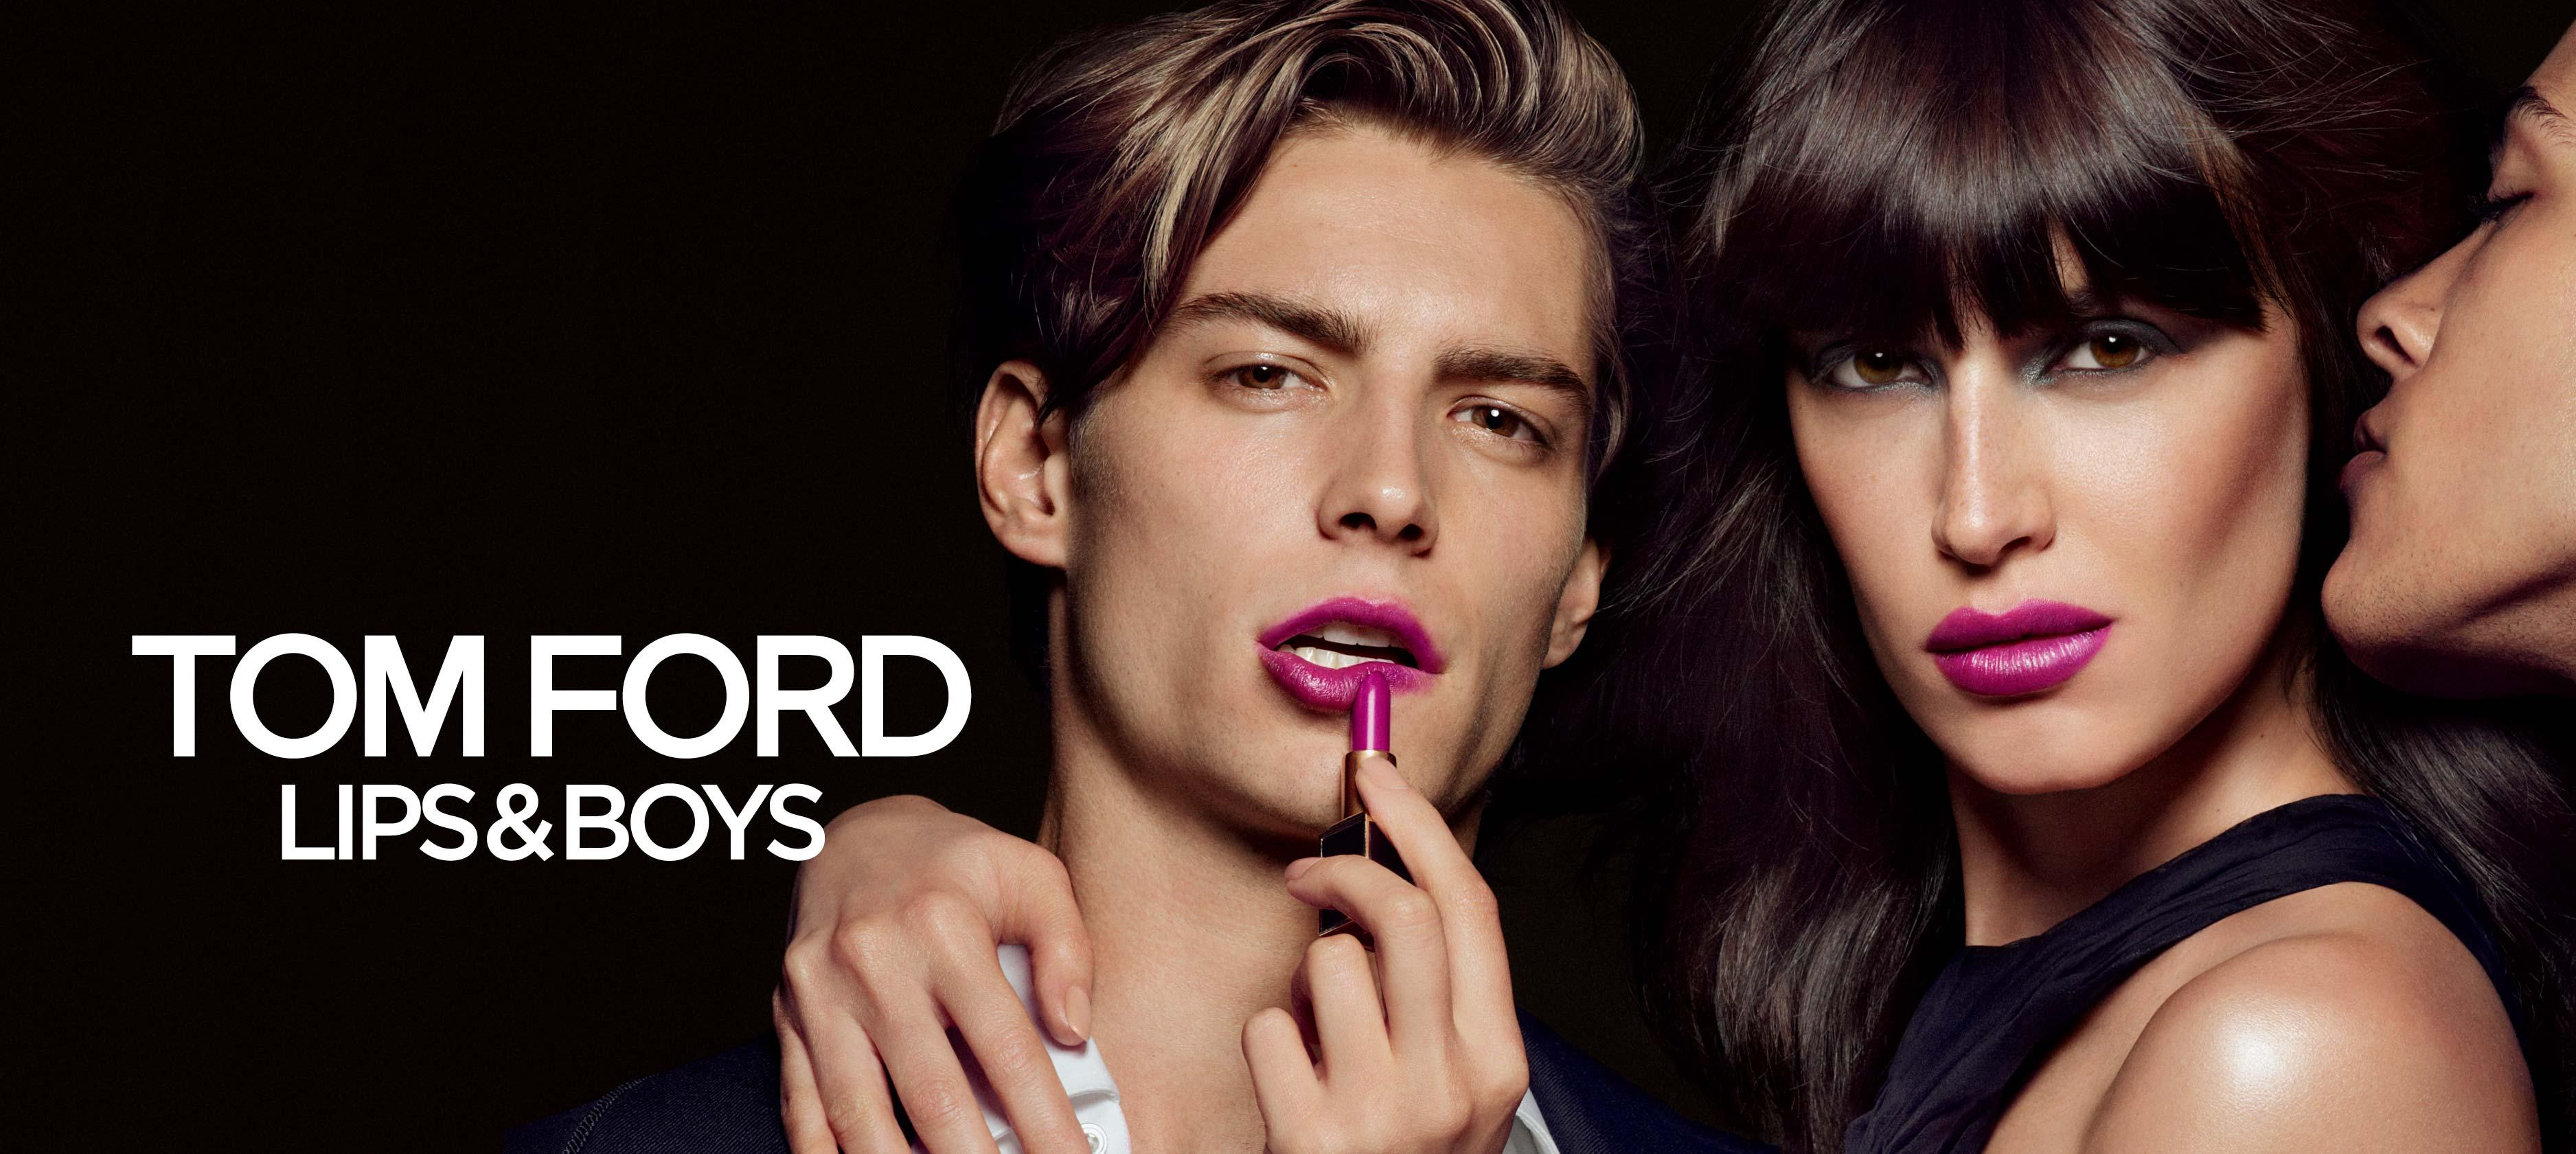 TOM FORD LIMITED-EDITION LIPS & BOYS LIP COLOR COLLECTION featured image